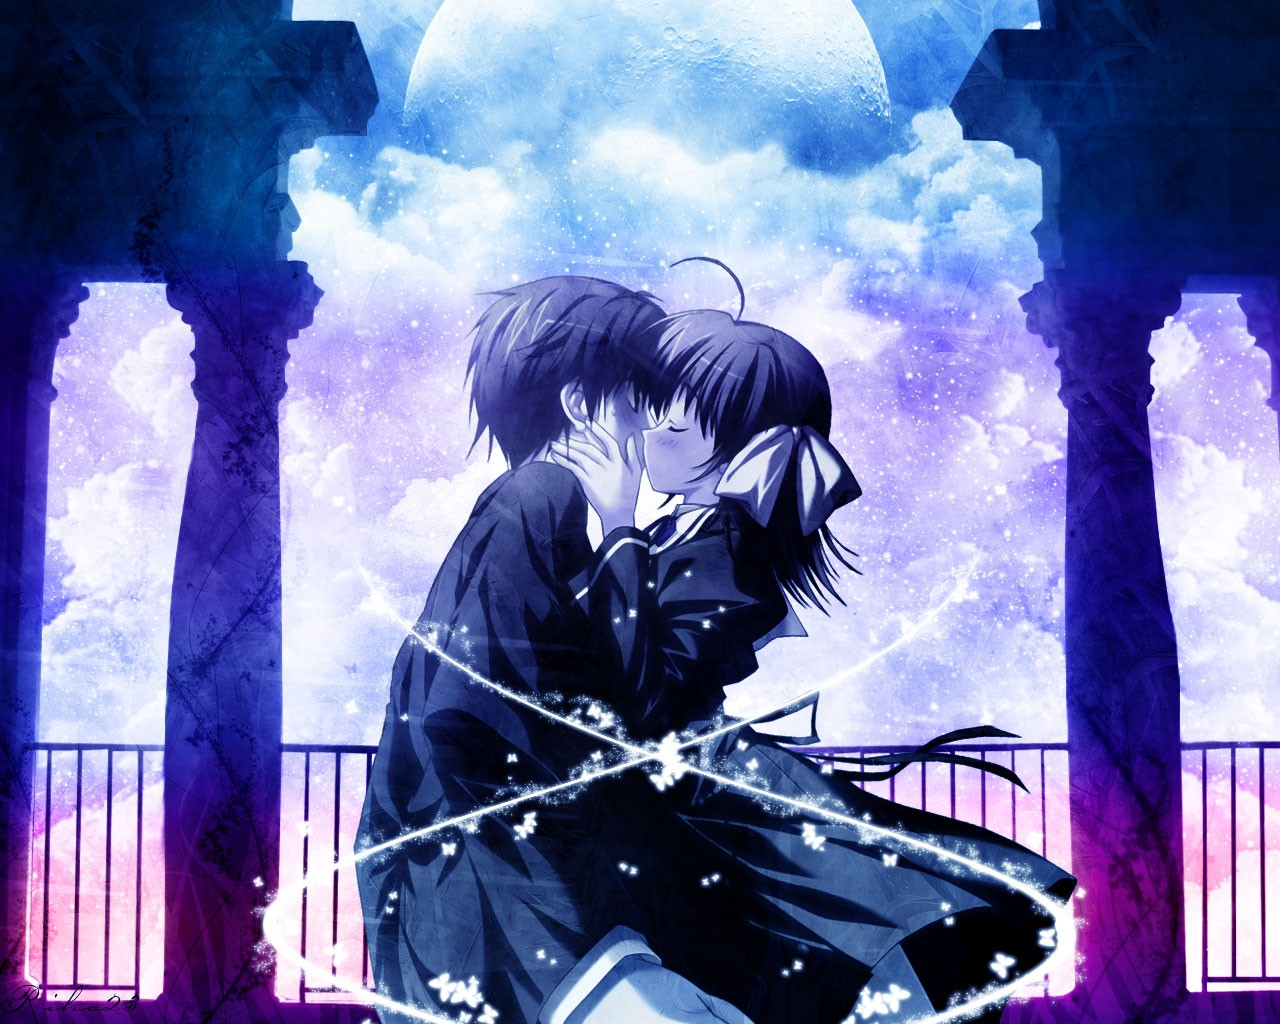 Animated Love Wallpaper Backgrounds : Anime Love Wallpapers Free Download Wallpaper DaWallpaperz